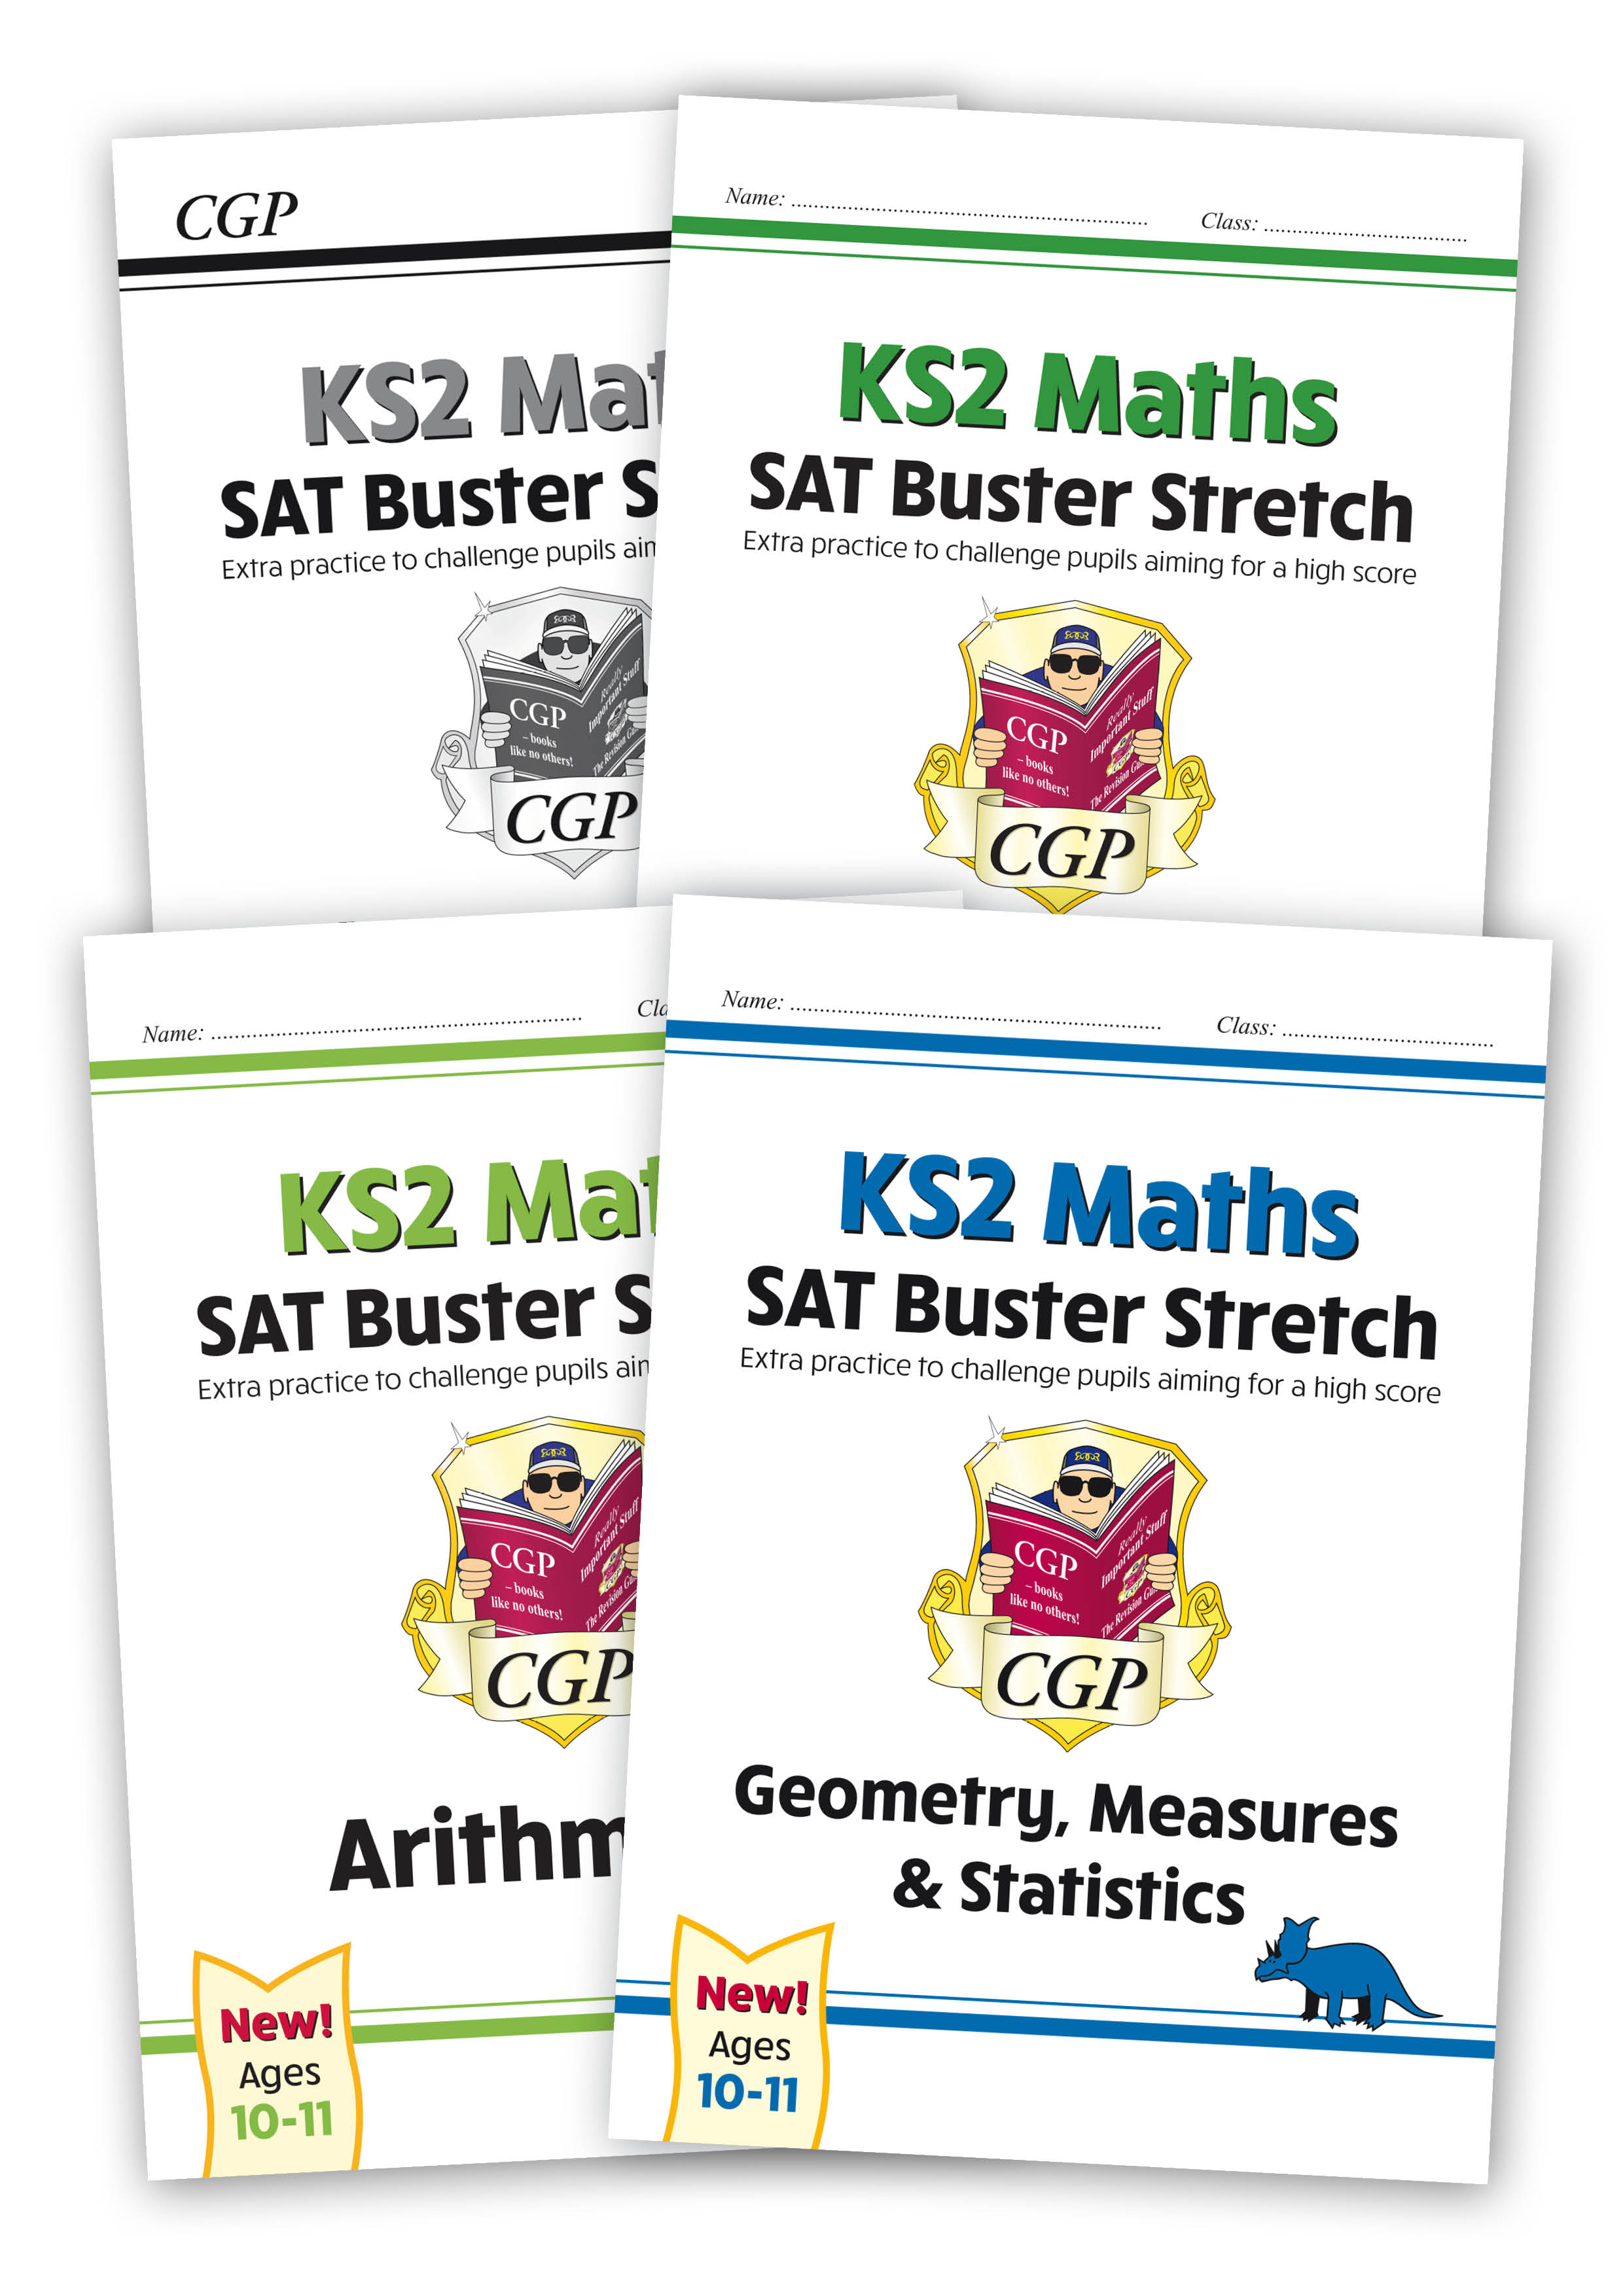 M6HSBB22 - New KS2 Maths SAT Buster Stretch Bundle - includes answers (for the 2020 tests)